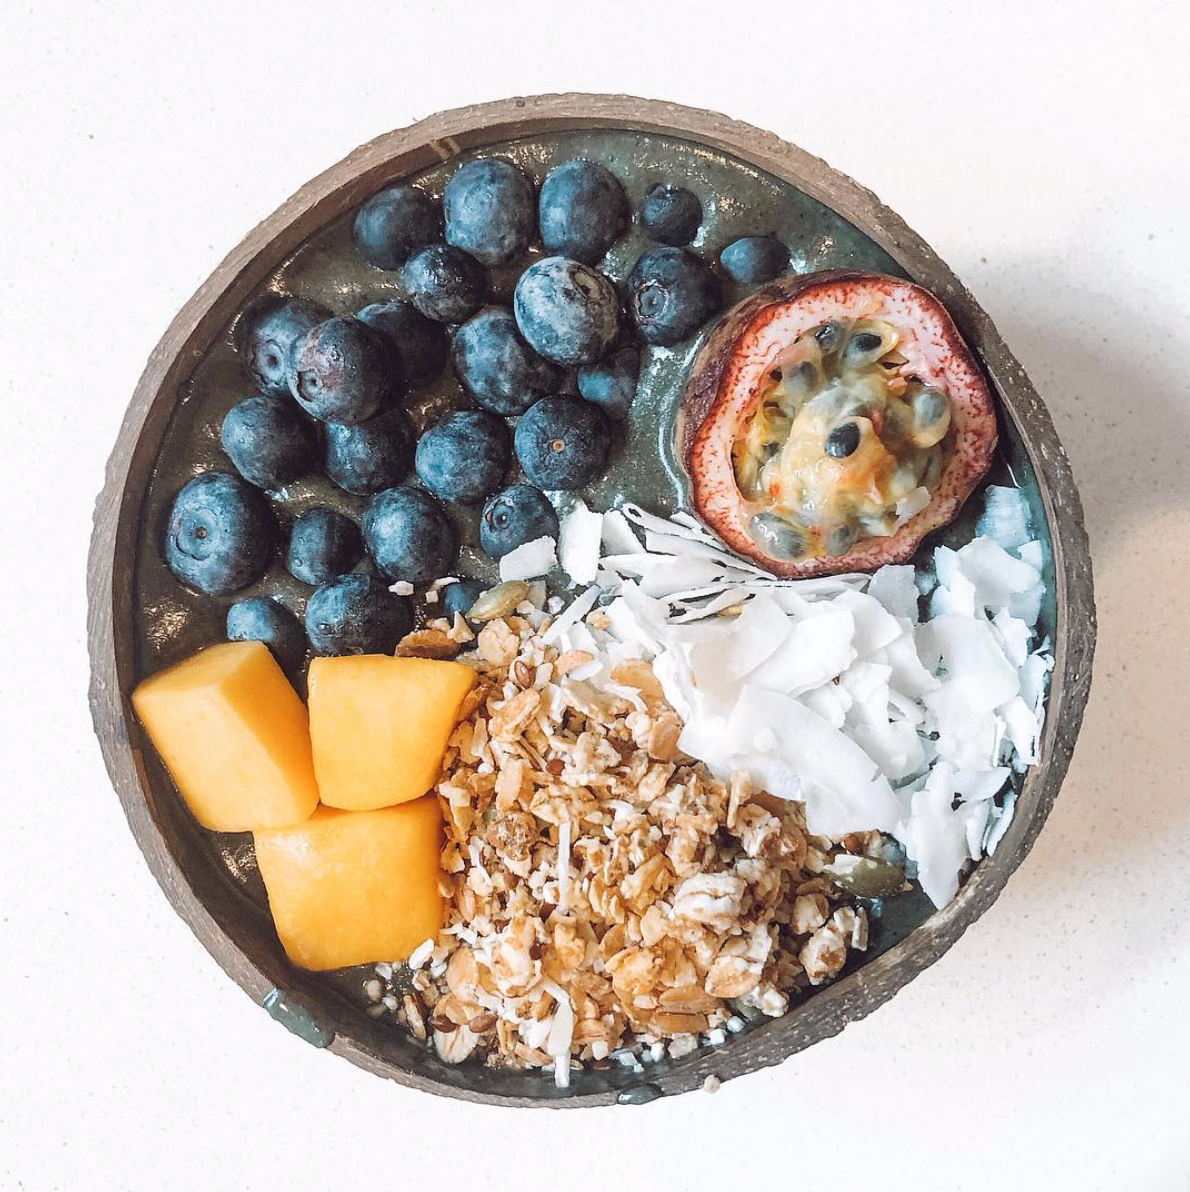 Wildbag Vegan Superfood Vanilla and Acai Ultimate Babe Smoothie Bowl